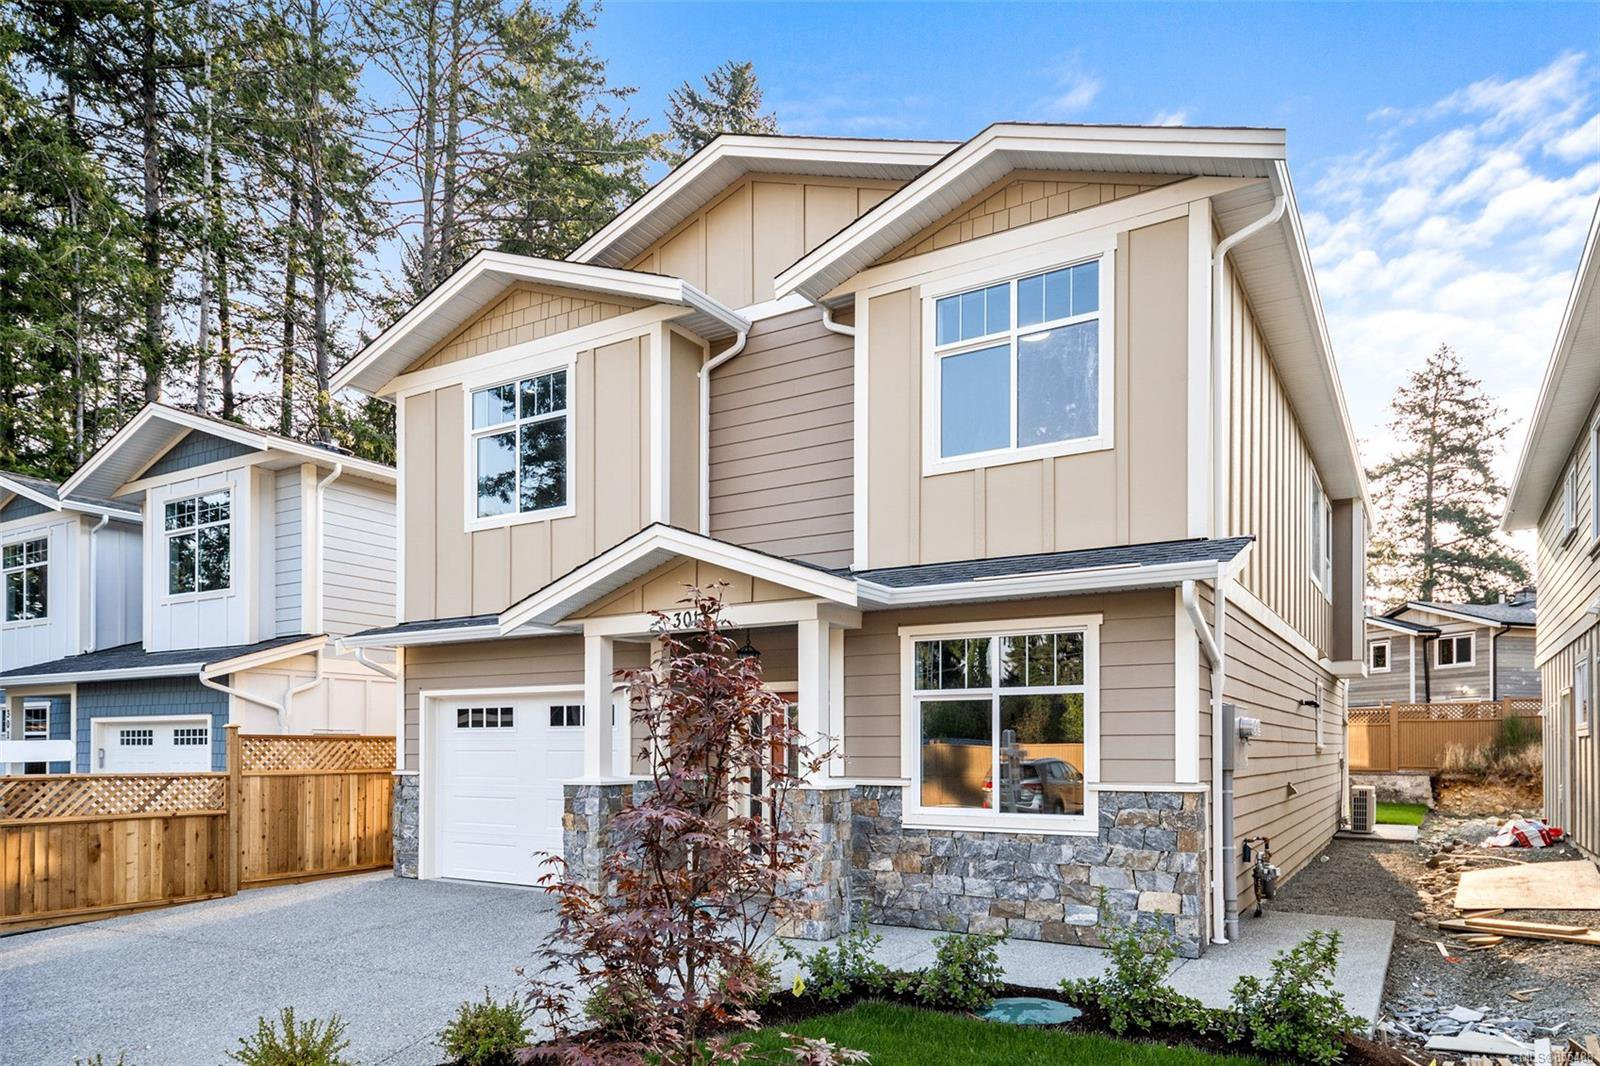 Main Photo: 3013 Zen Lane in : Co Hatley Park House for sale (Colwood)  : MLS®# 855488